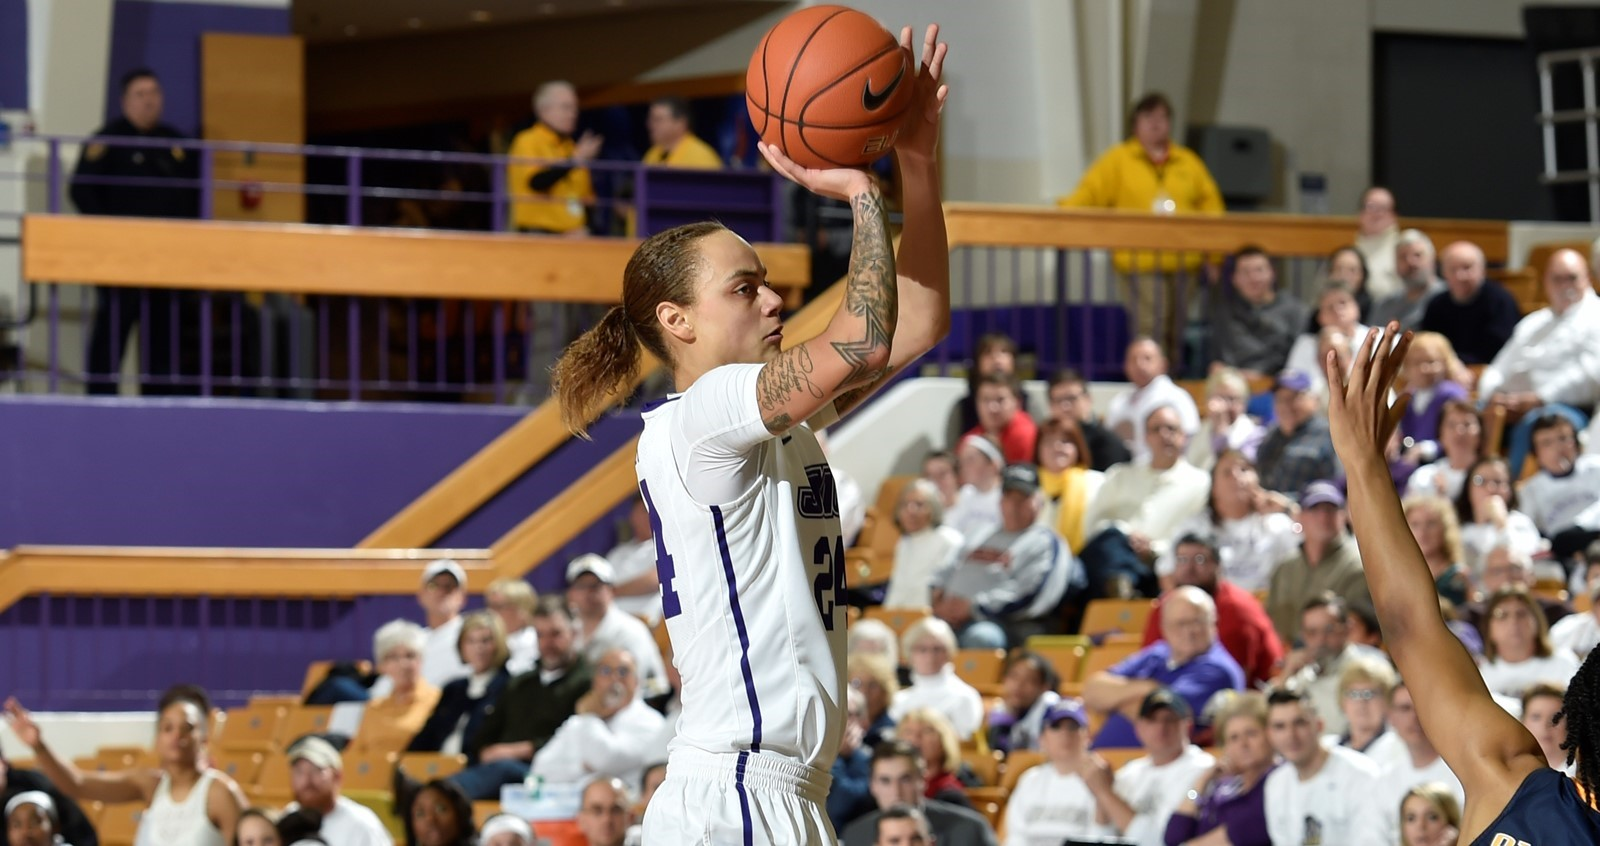 Women's Basketball: Gwathmey Garners Fourth CAA Player of the Week Honor